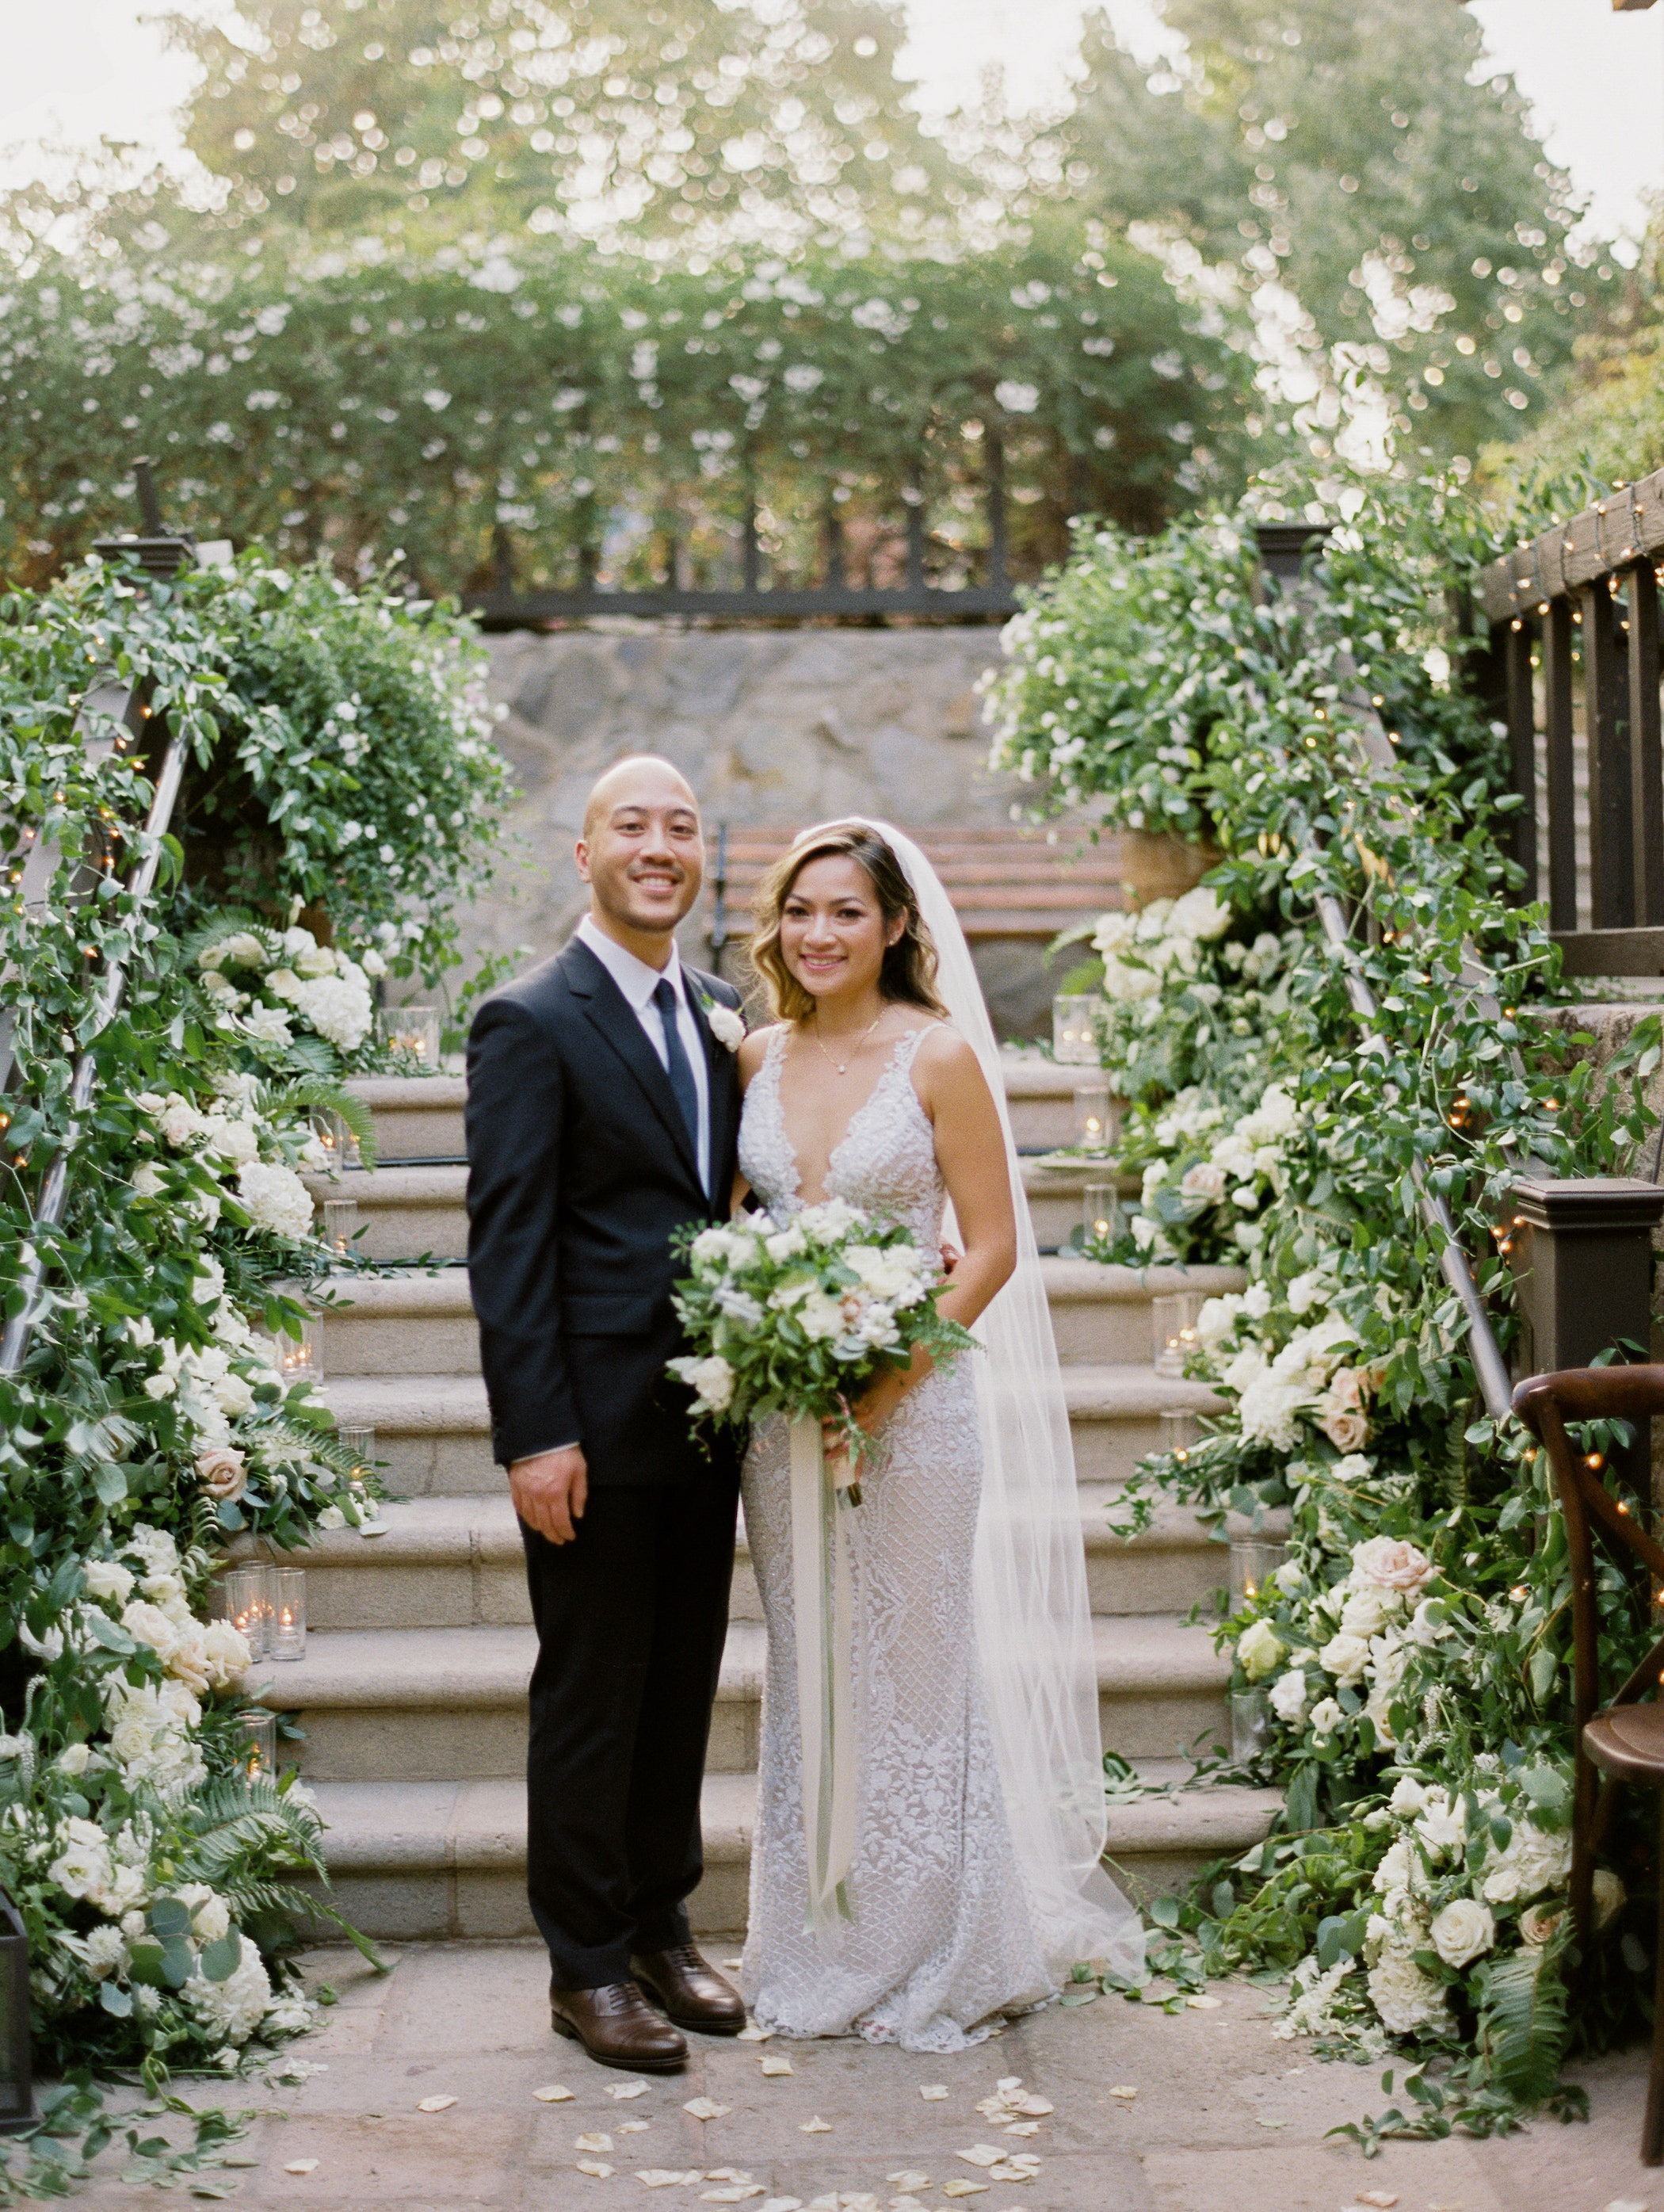 Venue | V. Sattui Winery  Photography | Coco Tran  Rentals | Encore Event Rentals  Flowers | Nancy Liu Chin Designs